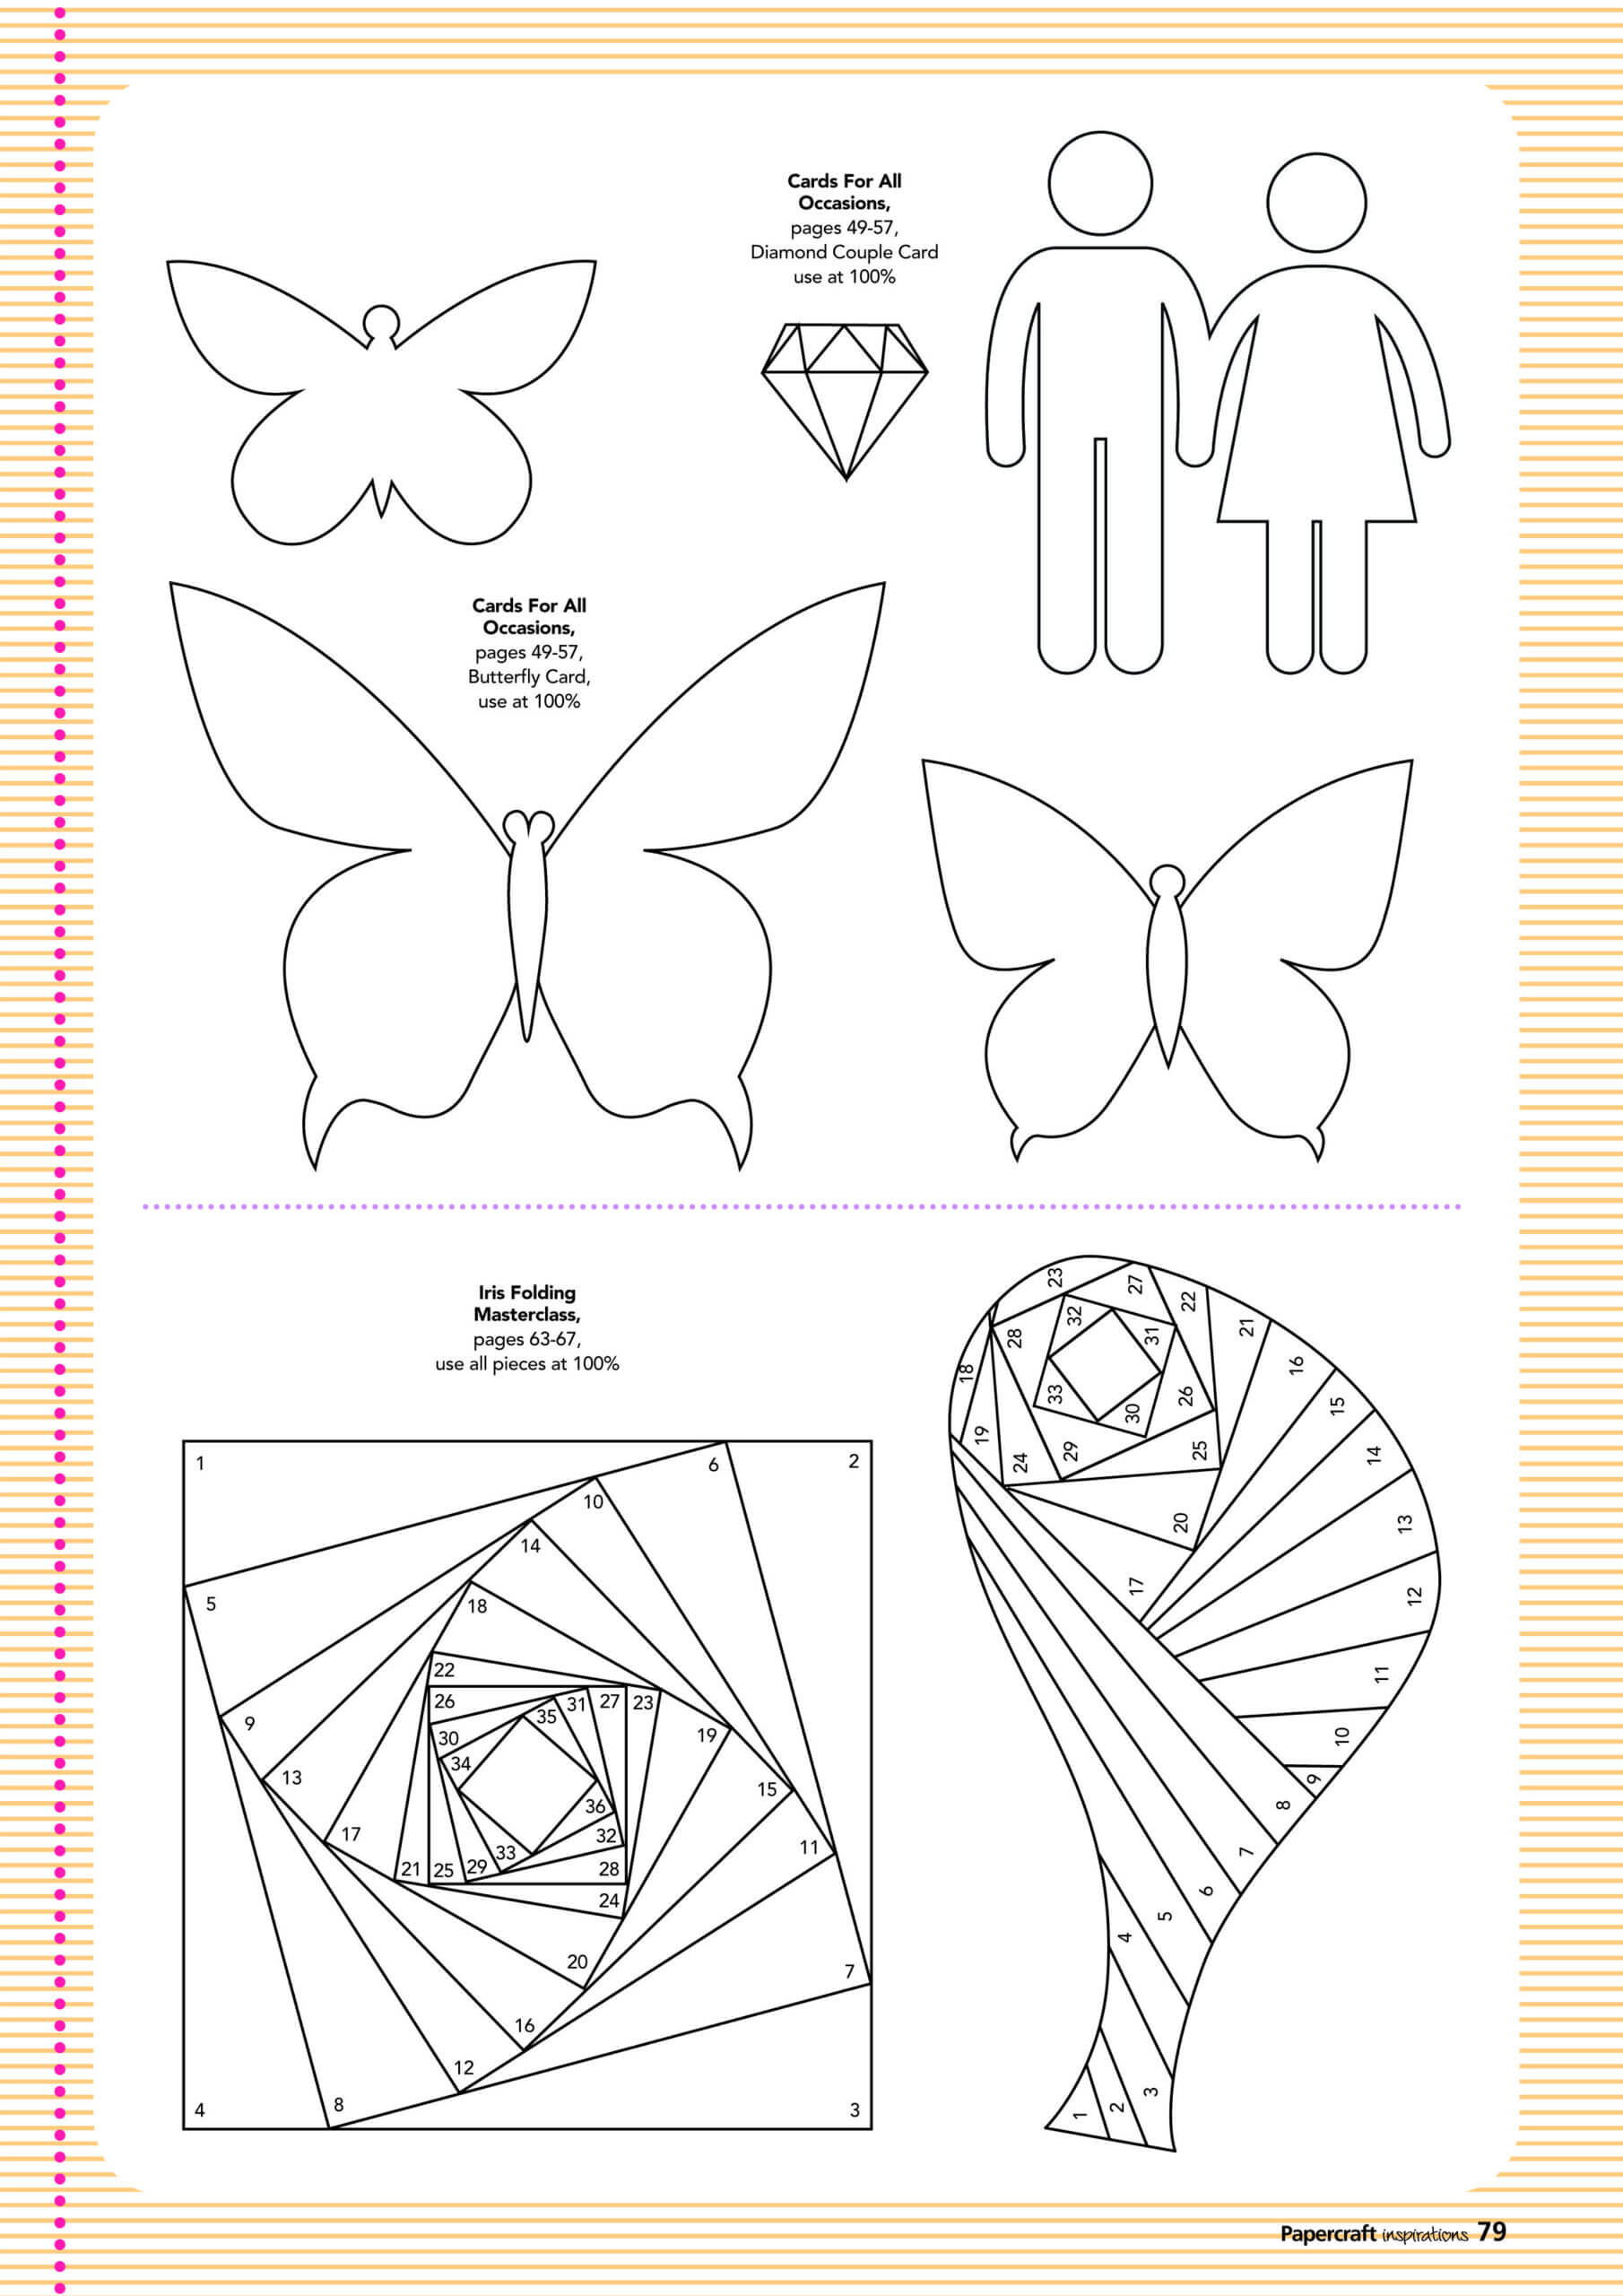 Free Card Making Templates From Papercraft Inspirations 123 With Regard To Card Folding Templates Free